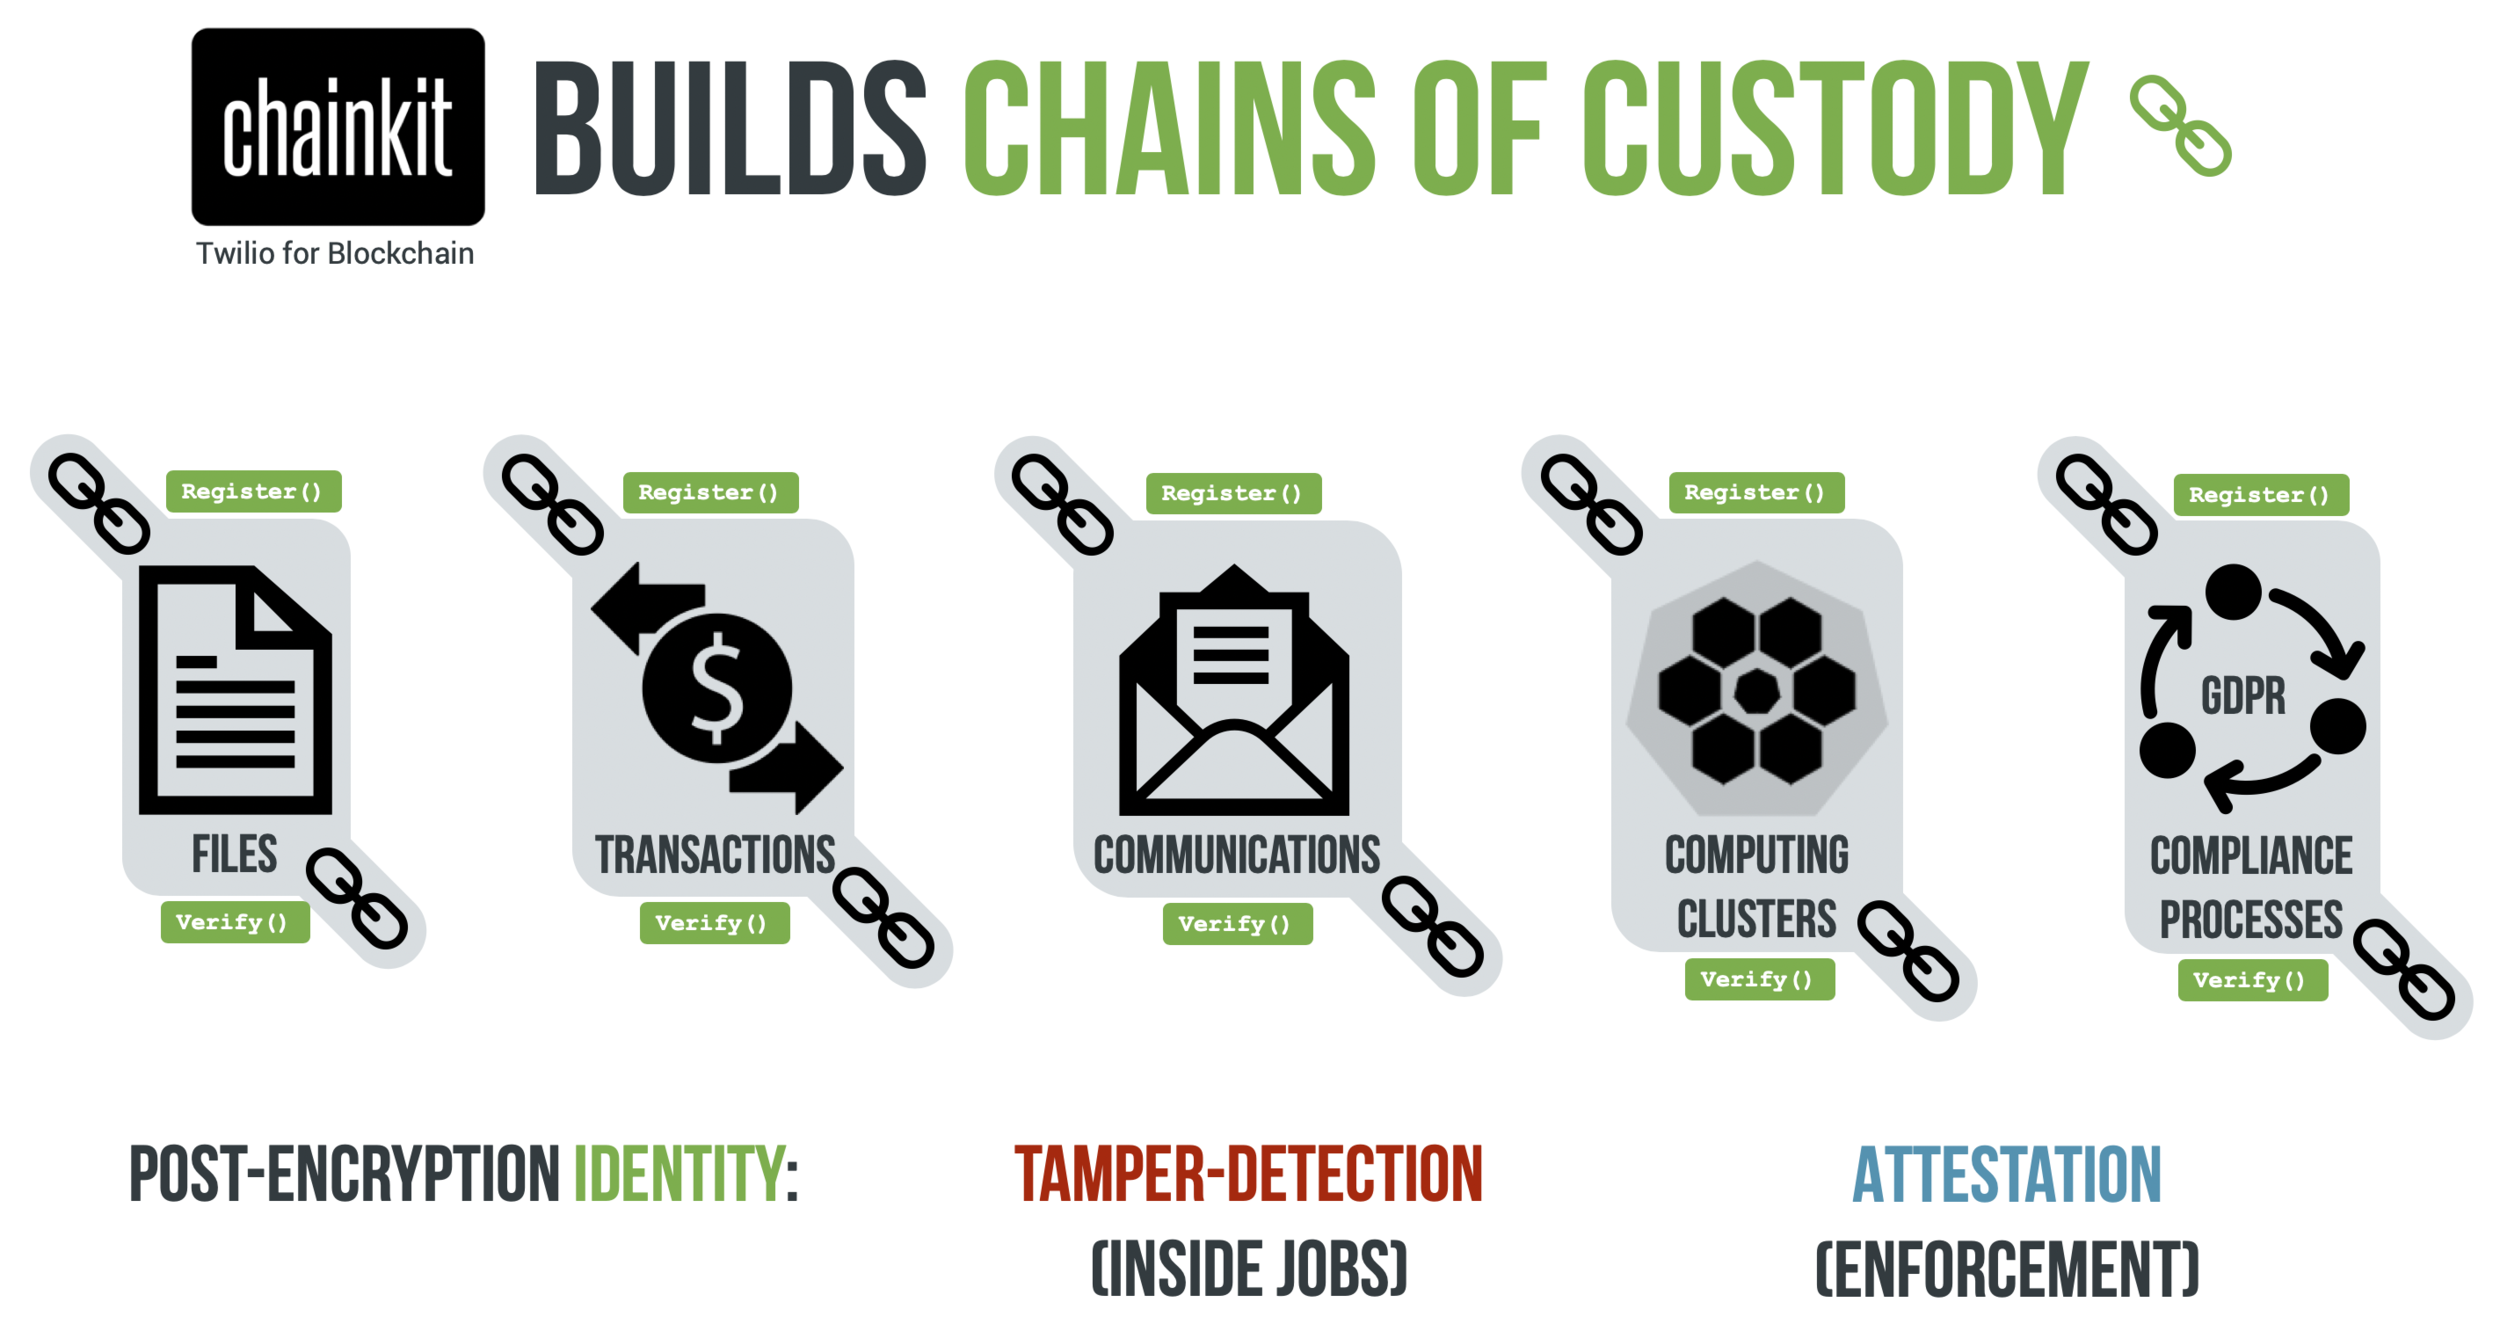 Chainkit builds Chains of Custody (wide. 2chains).png